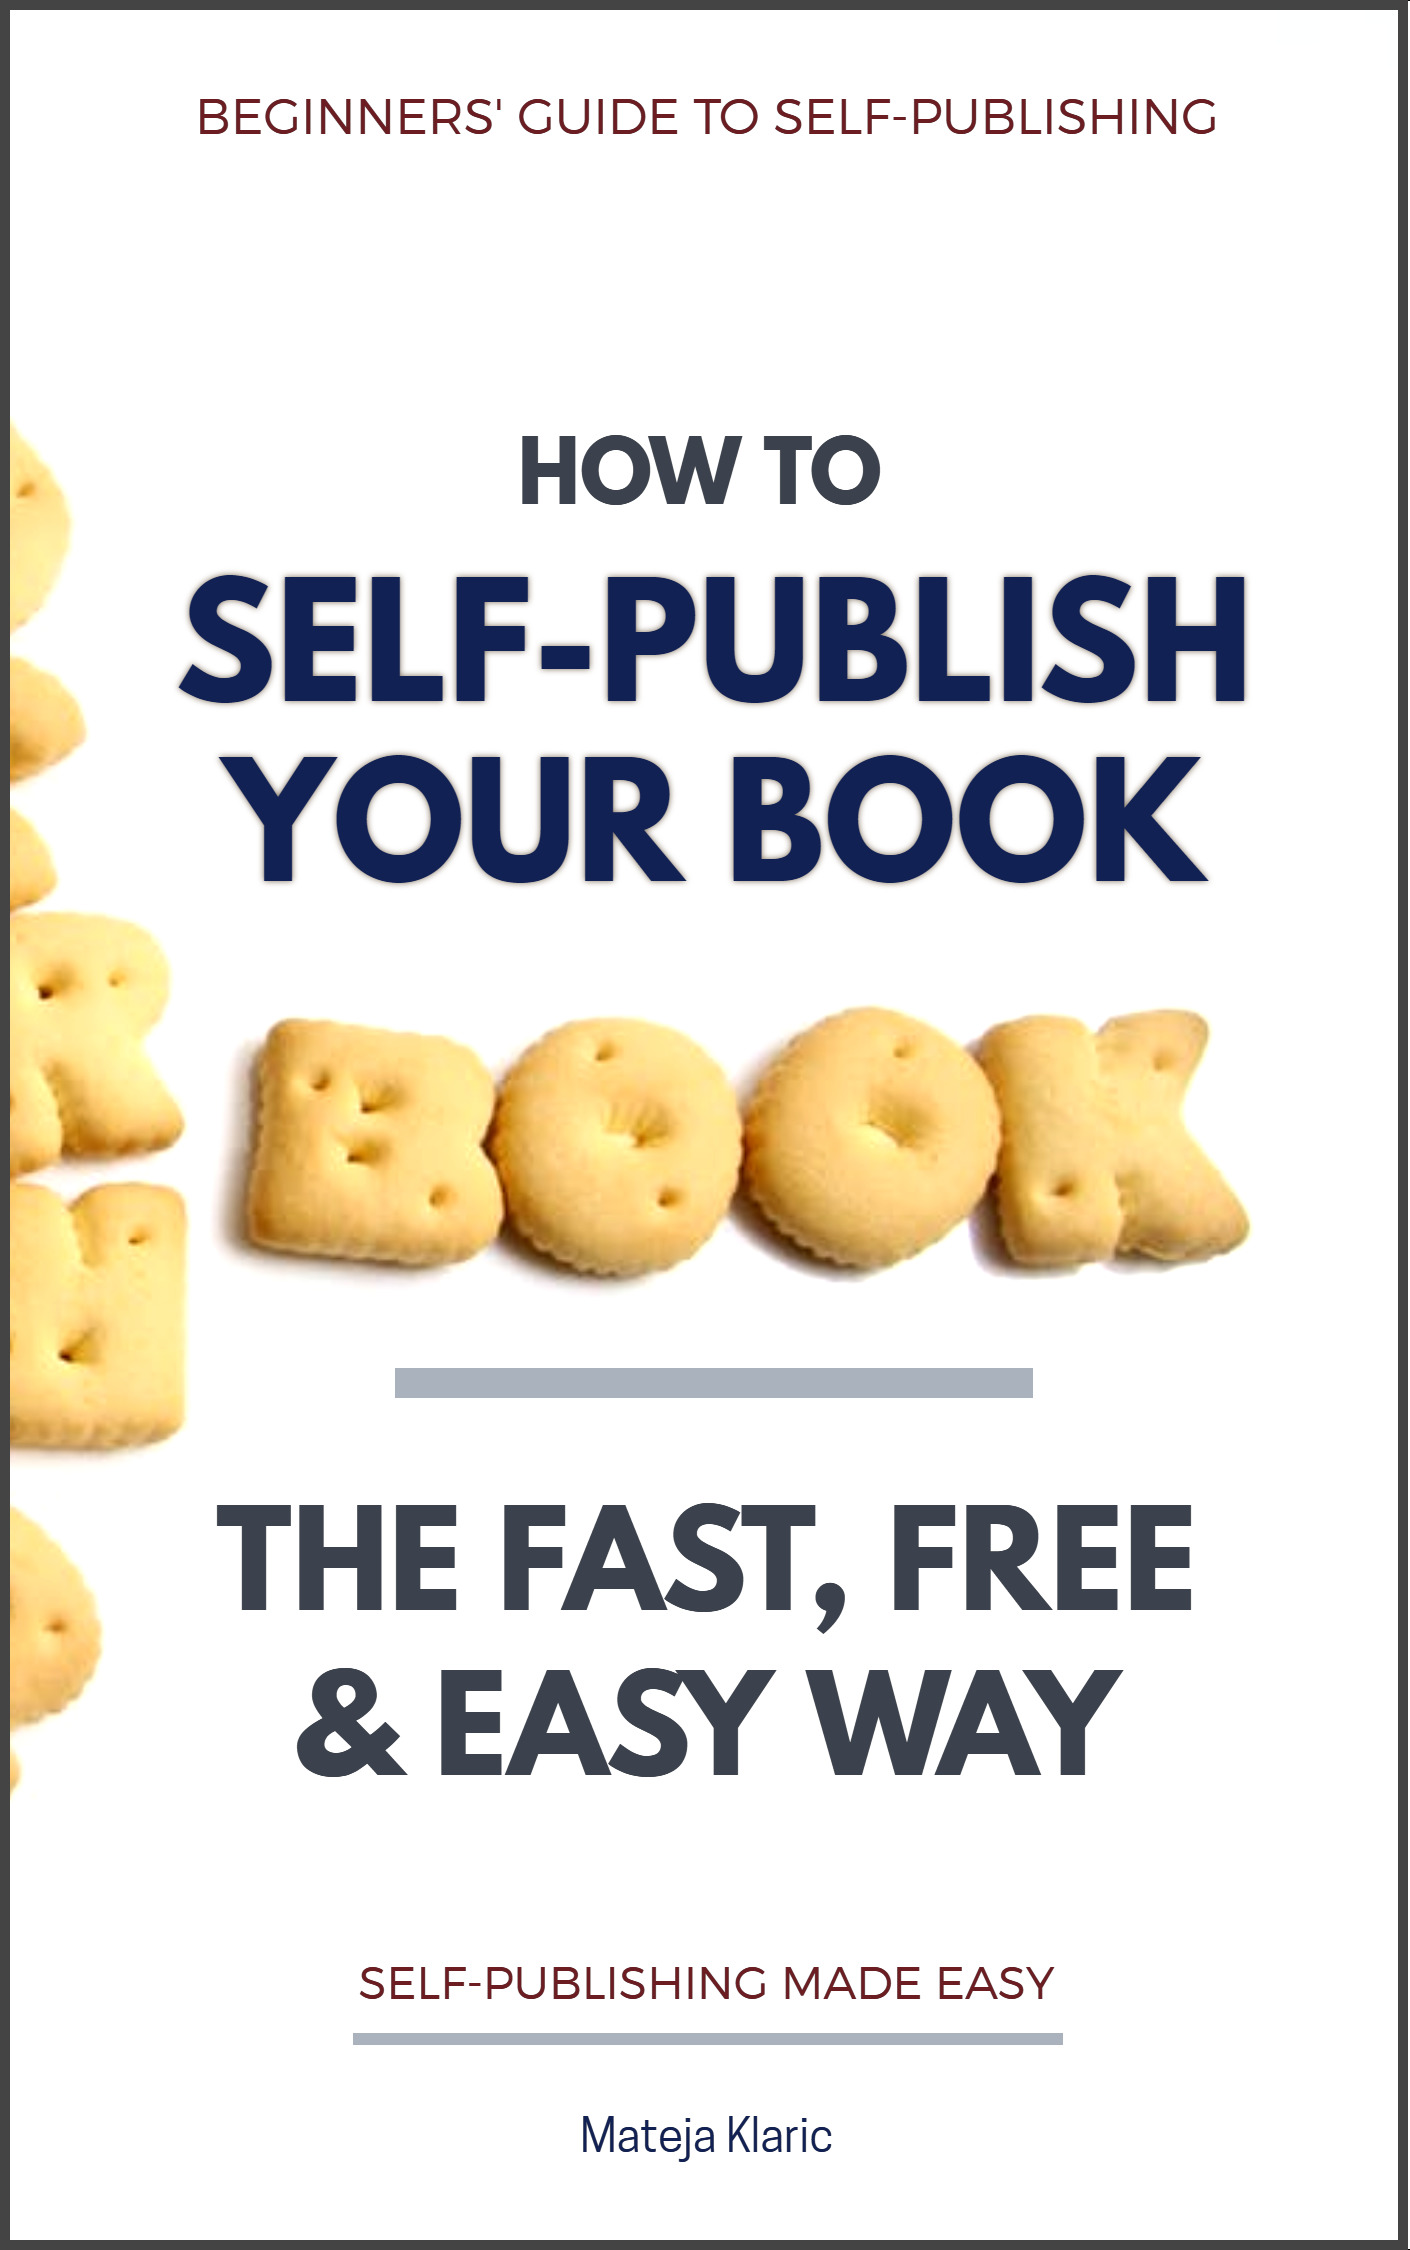 How to Self-Publish Your Book: The Fast, Free & Easy Way (Book 1 in Self-Publishing Made Easy series)